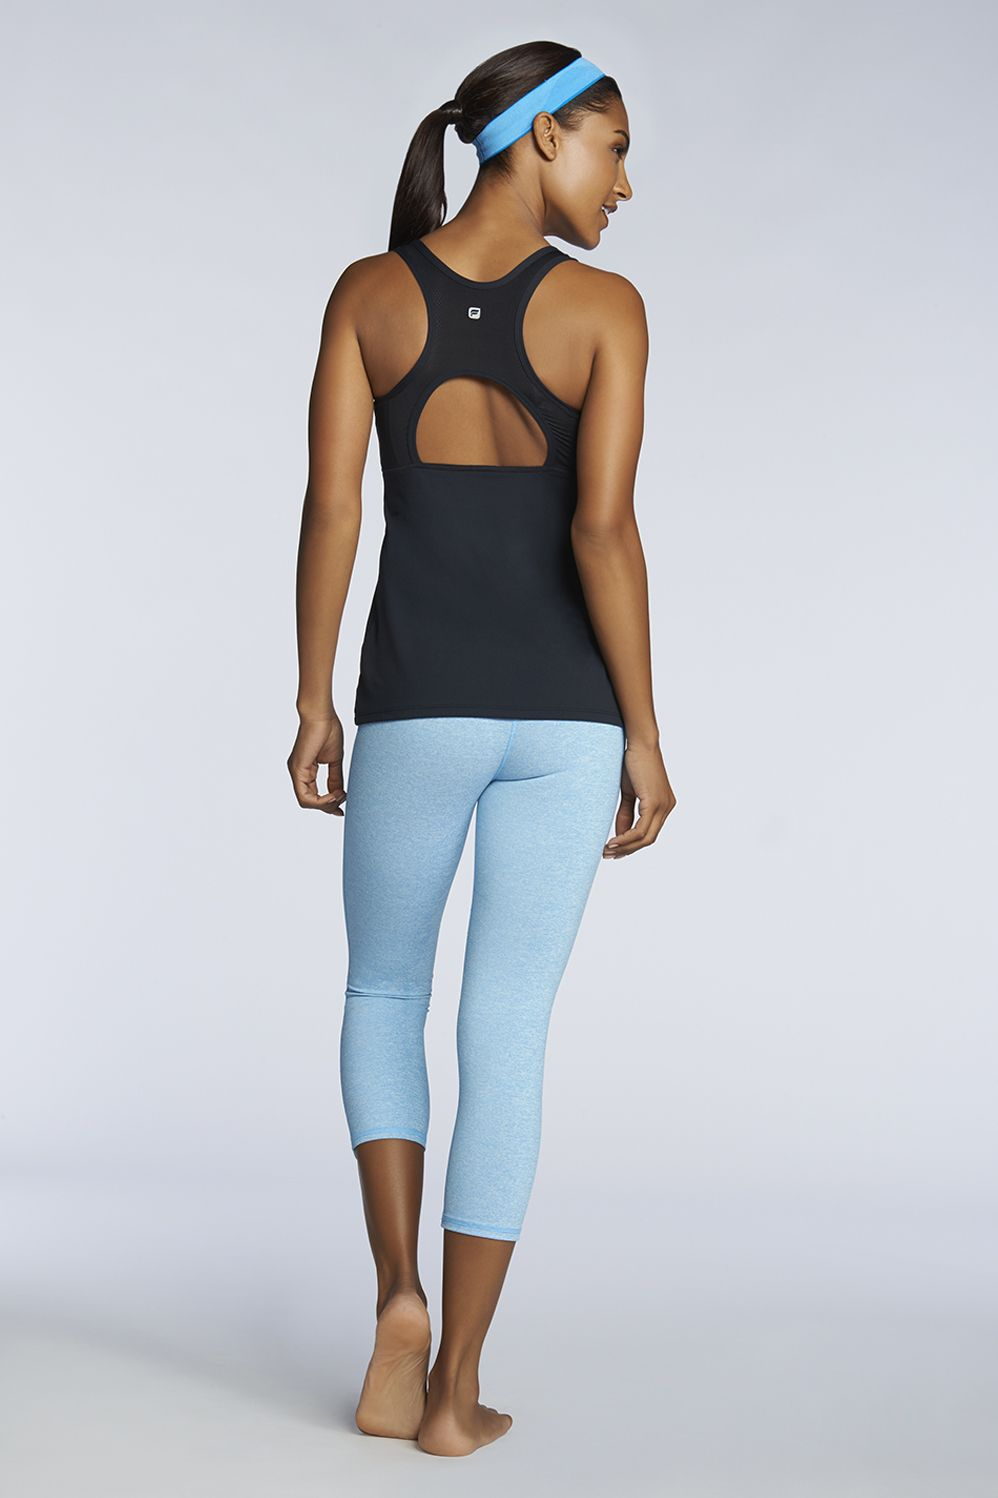 A fitness outfit that wows from every angle. Parclose - Fabletics